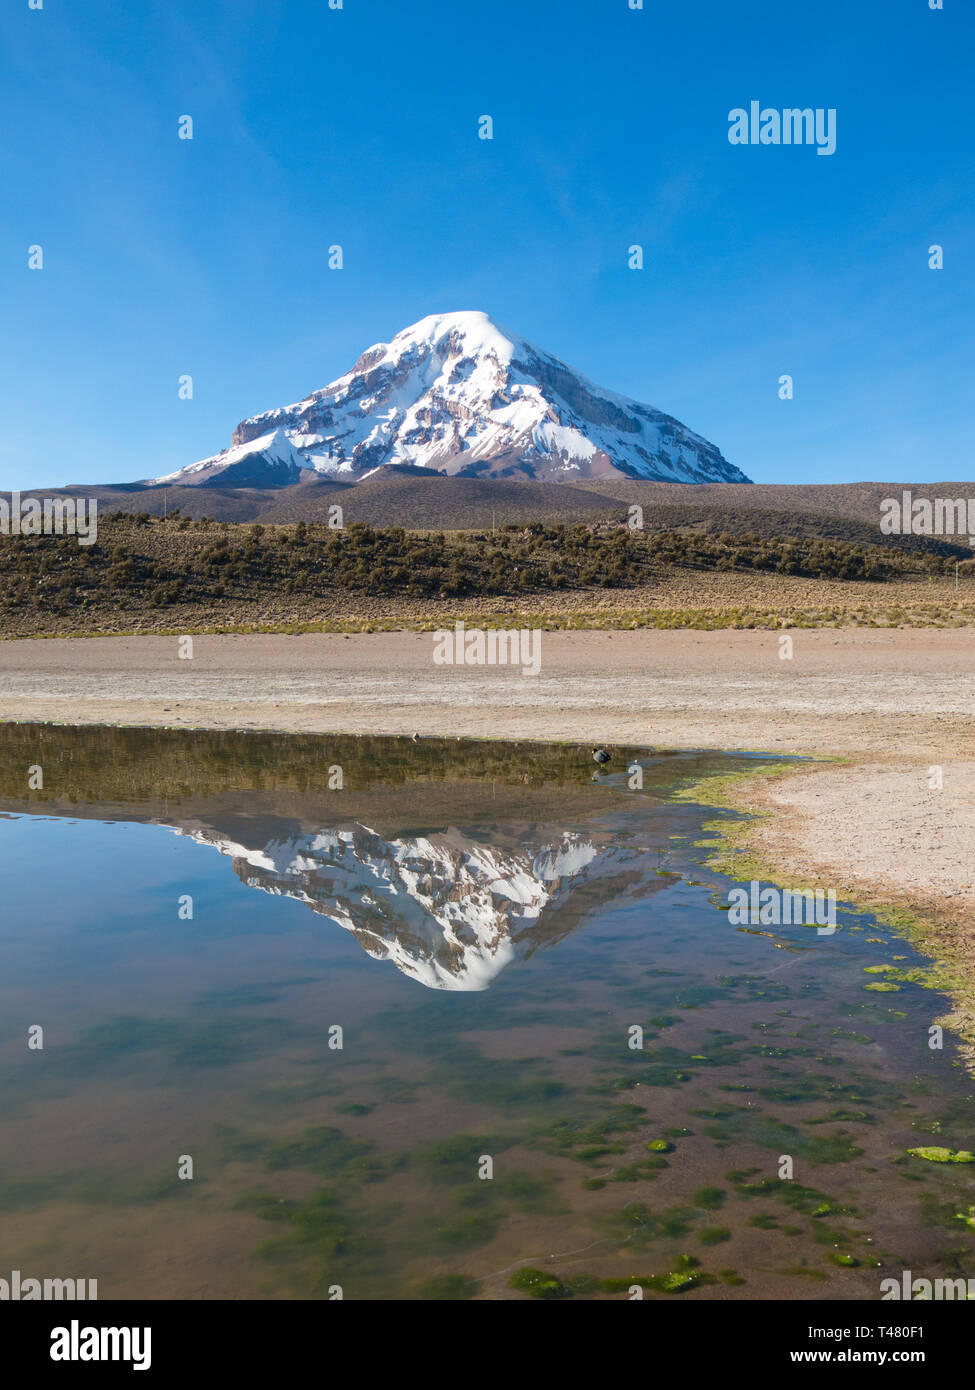 Sajama volcano and its reflection in the waters of Lake Huanacota. Sajama Natural park, Andean Bolivia - Stock Image